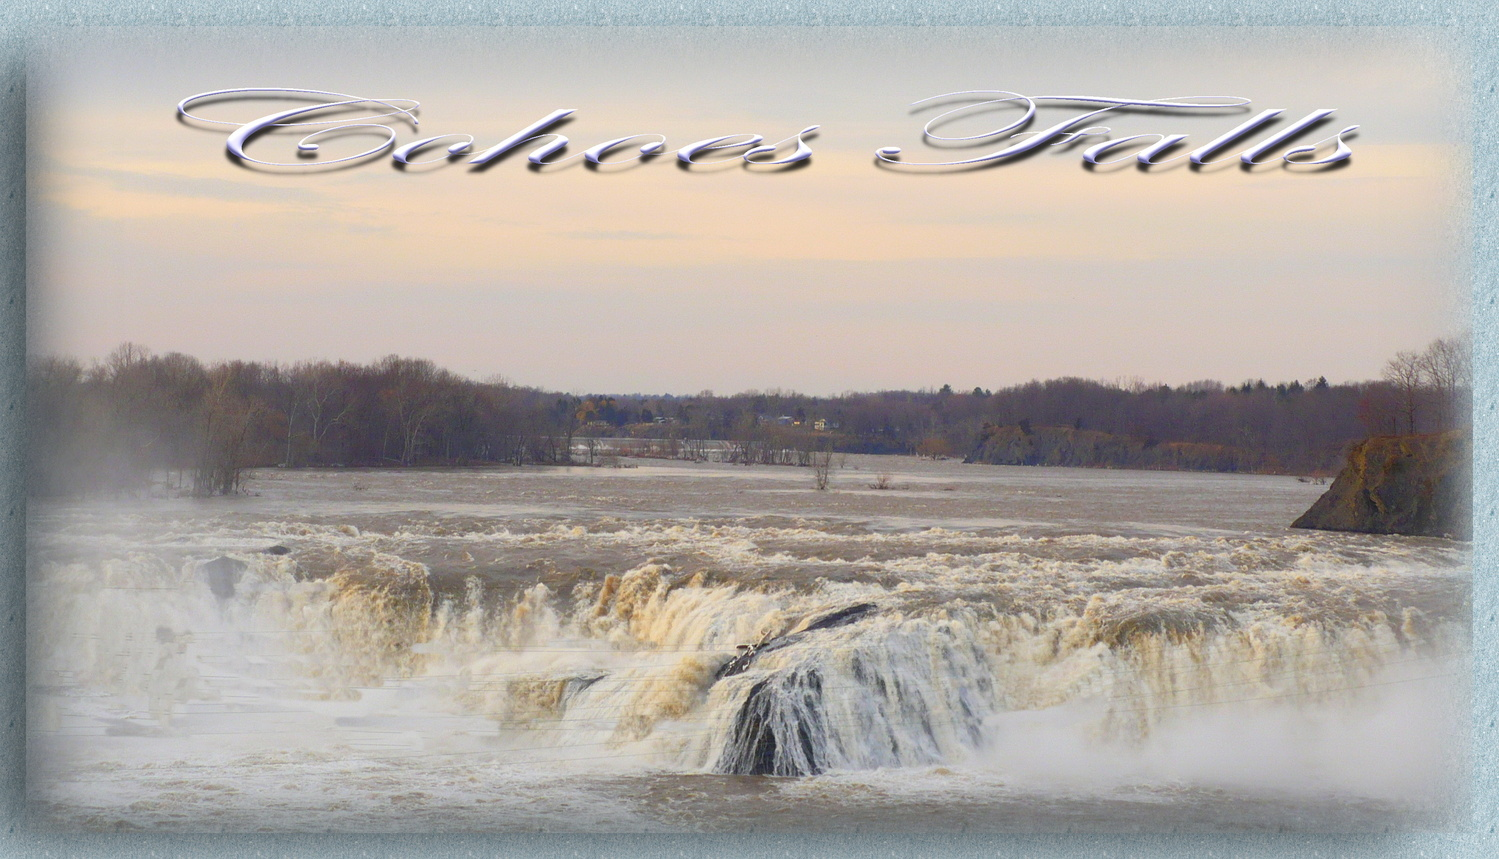 Cohoes Falls by Linda Whitworth